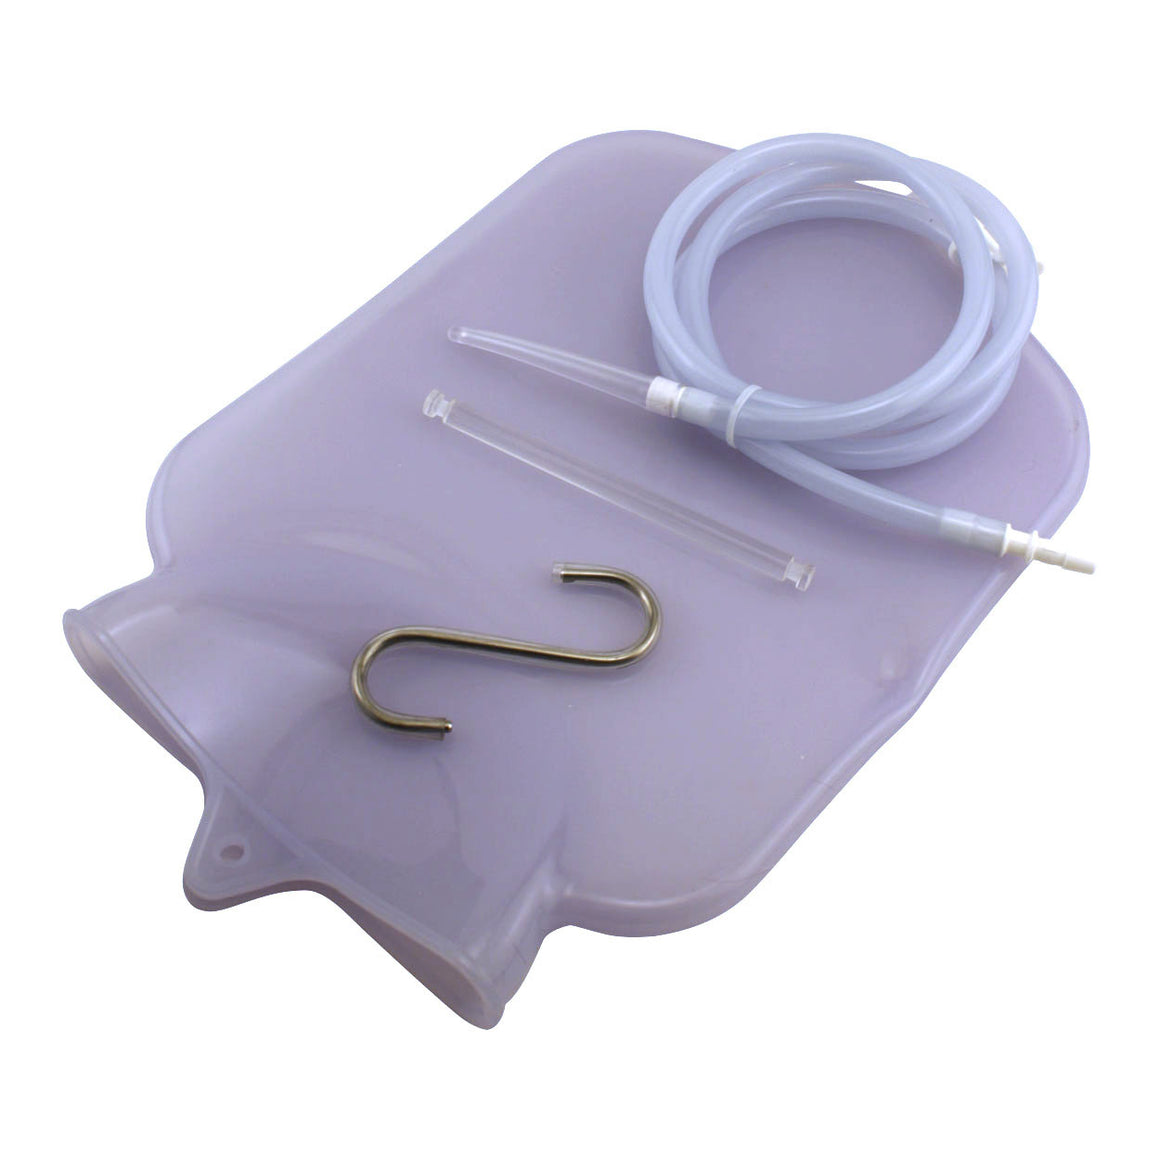 Shower Cleansing System - 1 Gallon Silicone Enema Bag